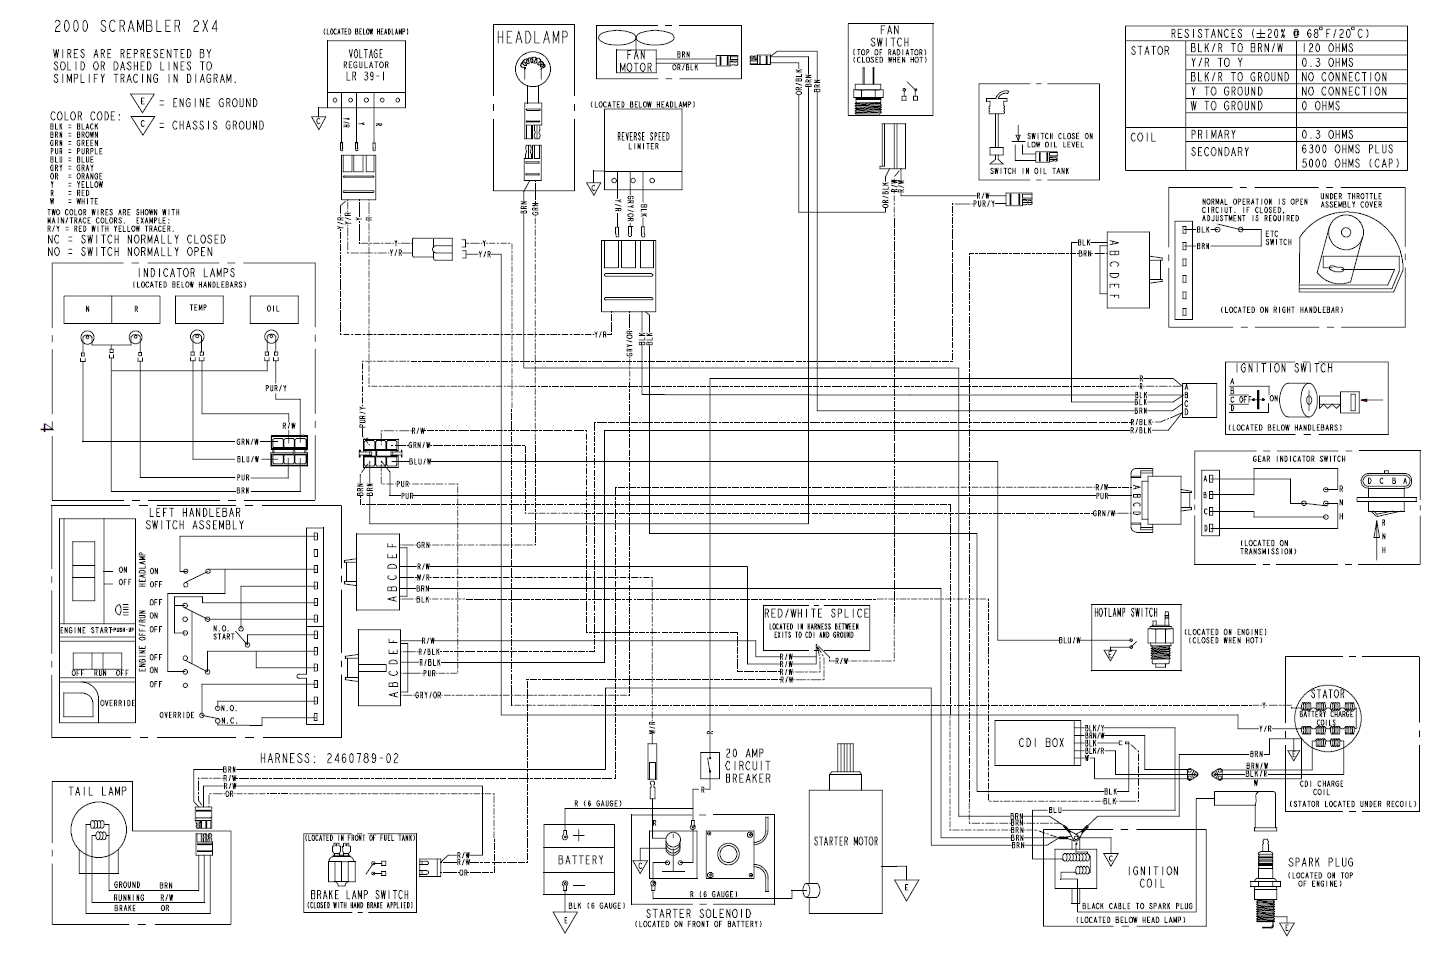 Scrambler 850 Wiring Diagram - For Cat 6 Cable Wiring Router To Router  Diagram 1970opel-gtwiring.au-delice-limousin.fr | Bcn Wire Diagram |  | Bege Wiring Diagram - Bege Wiring Diagram Full Edition